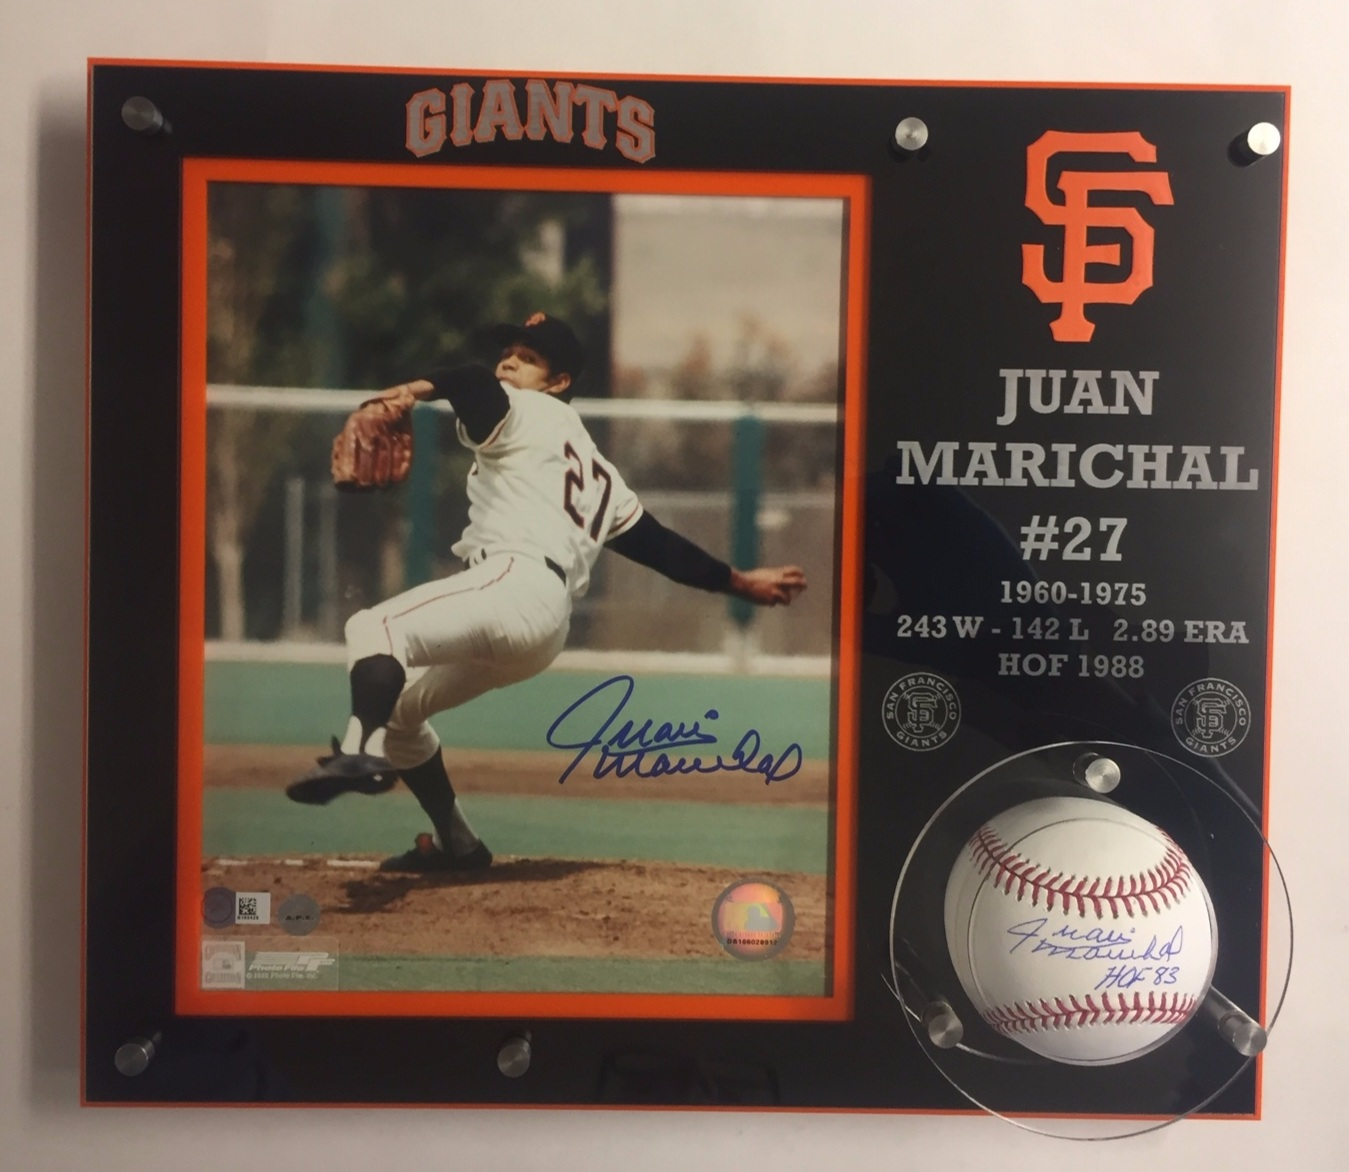 Collector's frame holds 8x10 portrait and baseball - 5-layer acrylic, SS hardware, in team colors, with logos and individuals relevant statistics, wall-mount  Contact us for design and pricing information for your collector's photos and balls